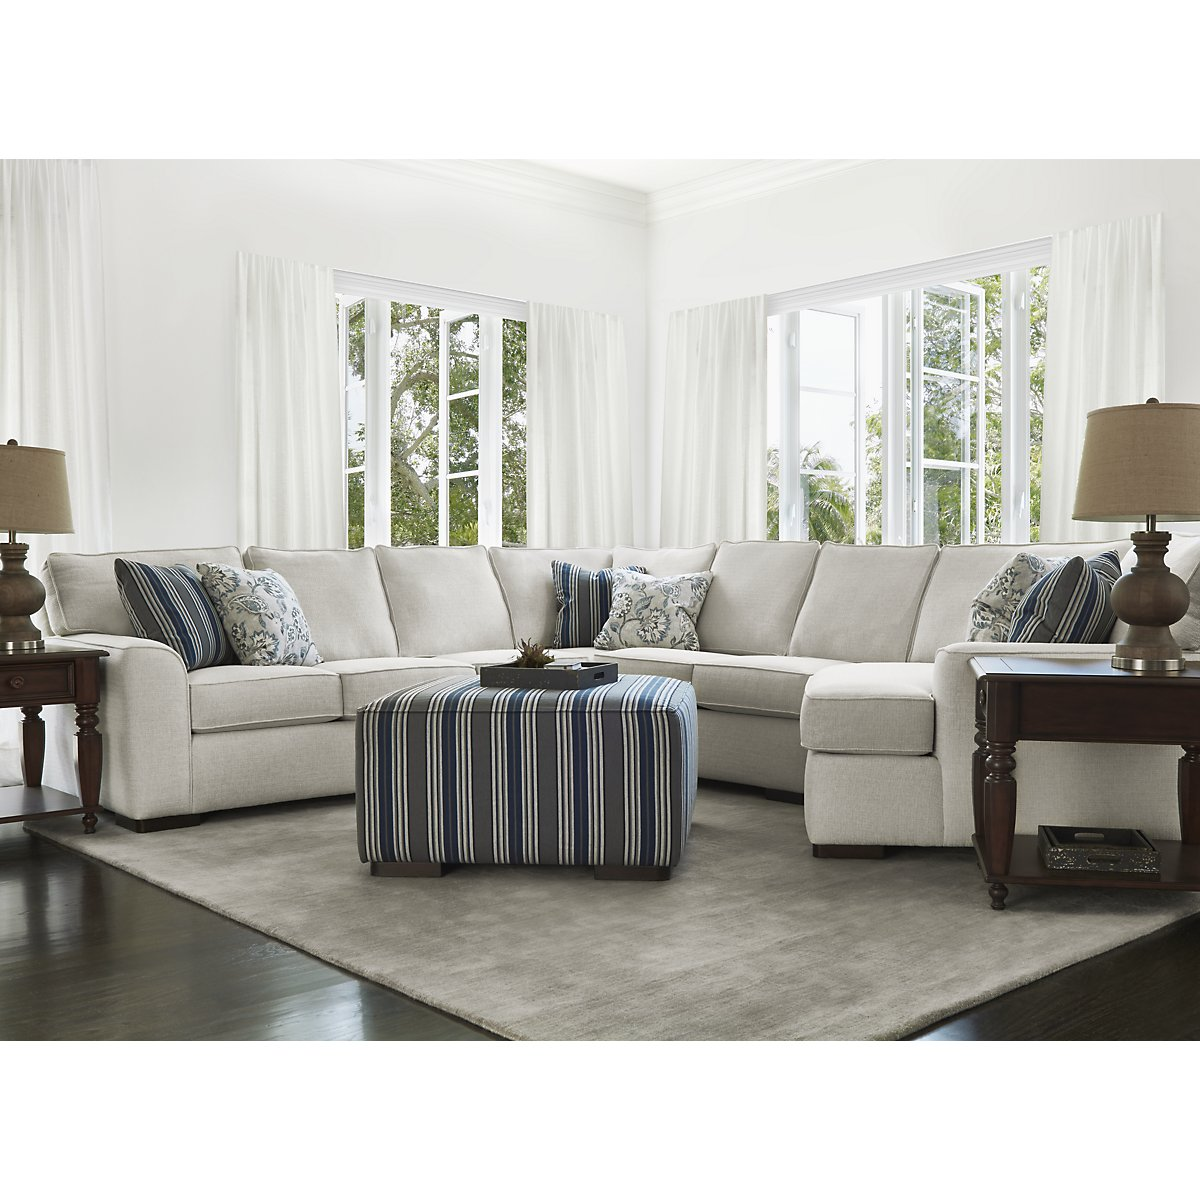 Free Furniture Austin: Austin White Fabric Small Right Cuddler Sectional